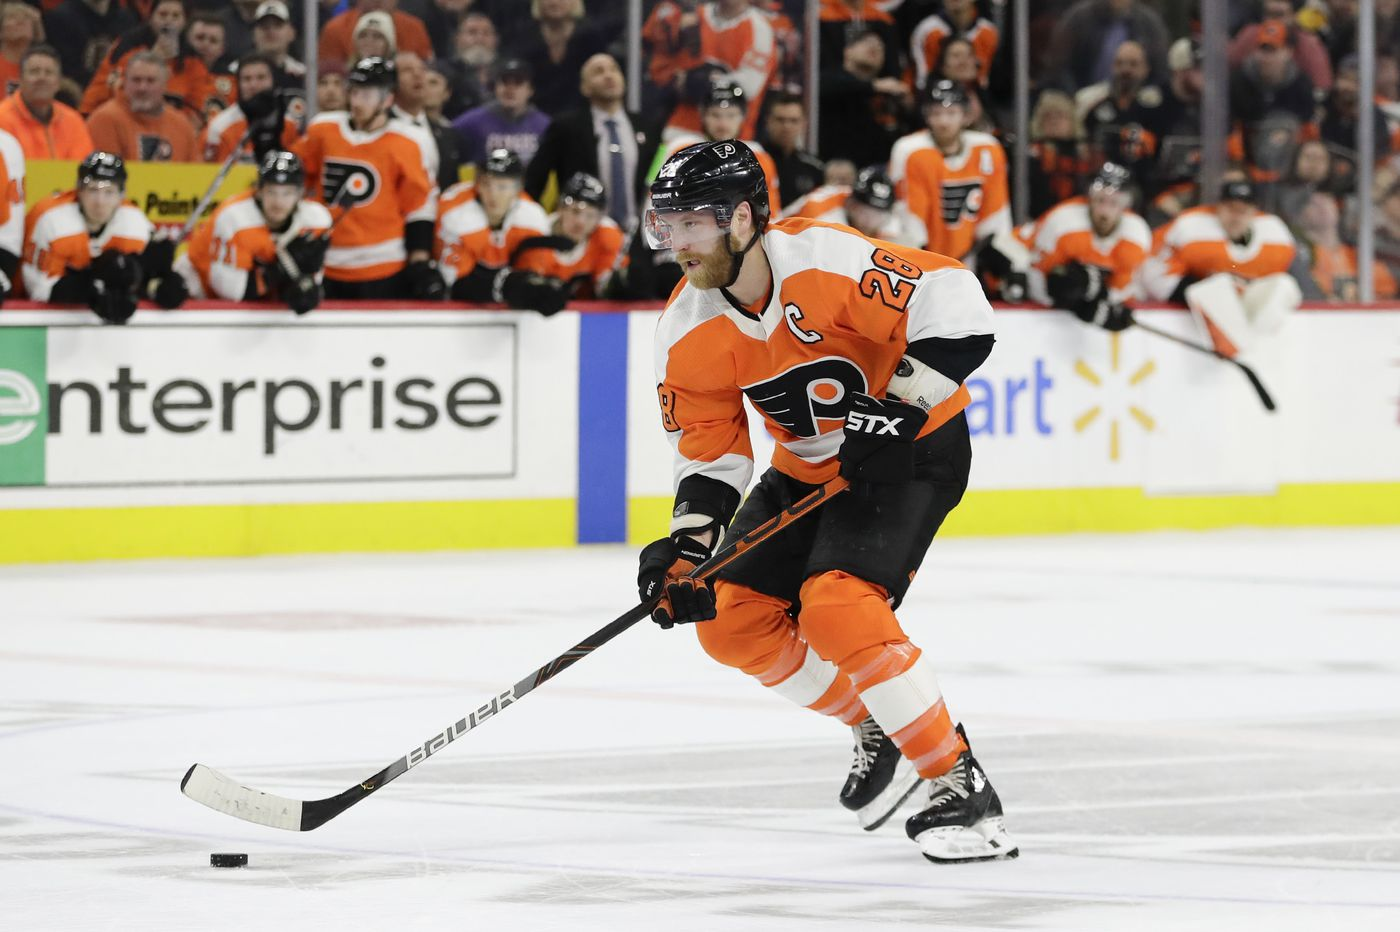 Flyers ready for round-robin tournament and 'getting our game where it needs to be' for the playoffs